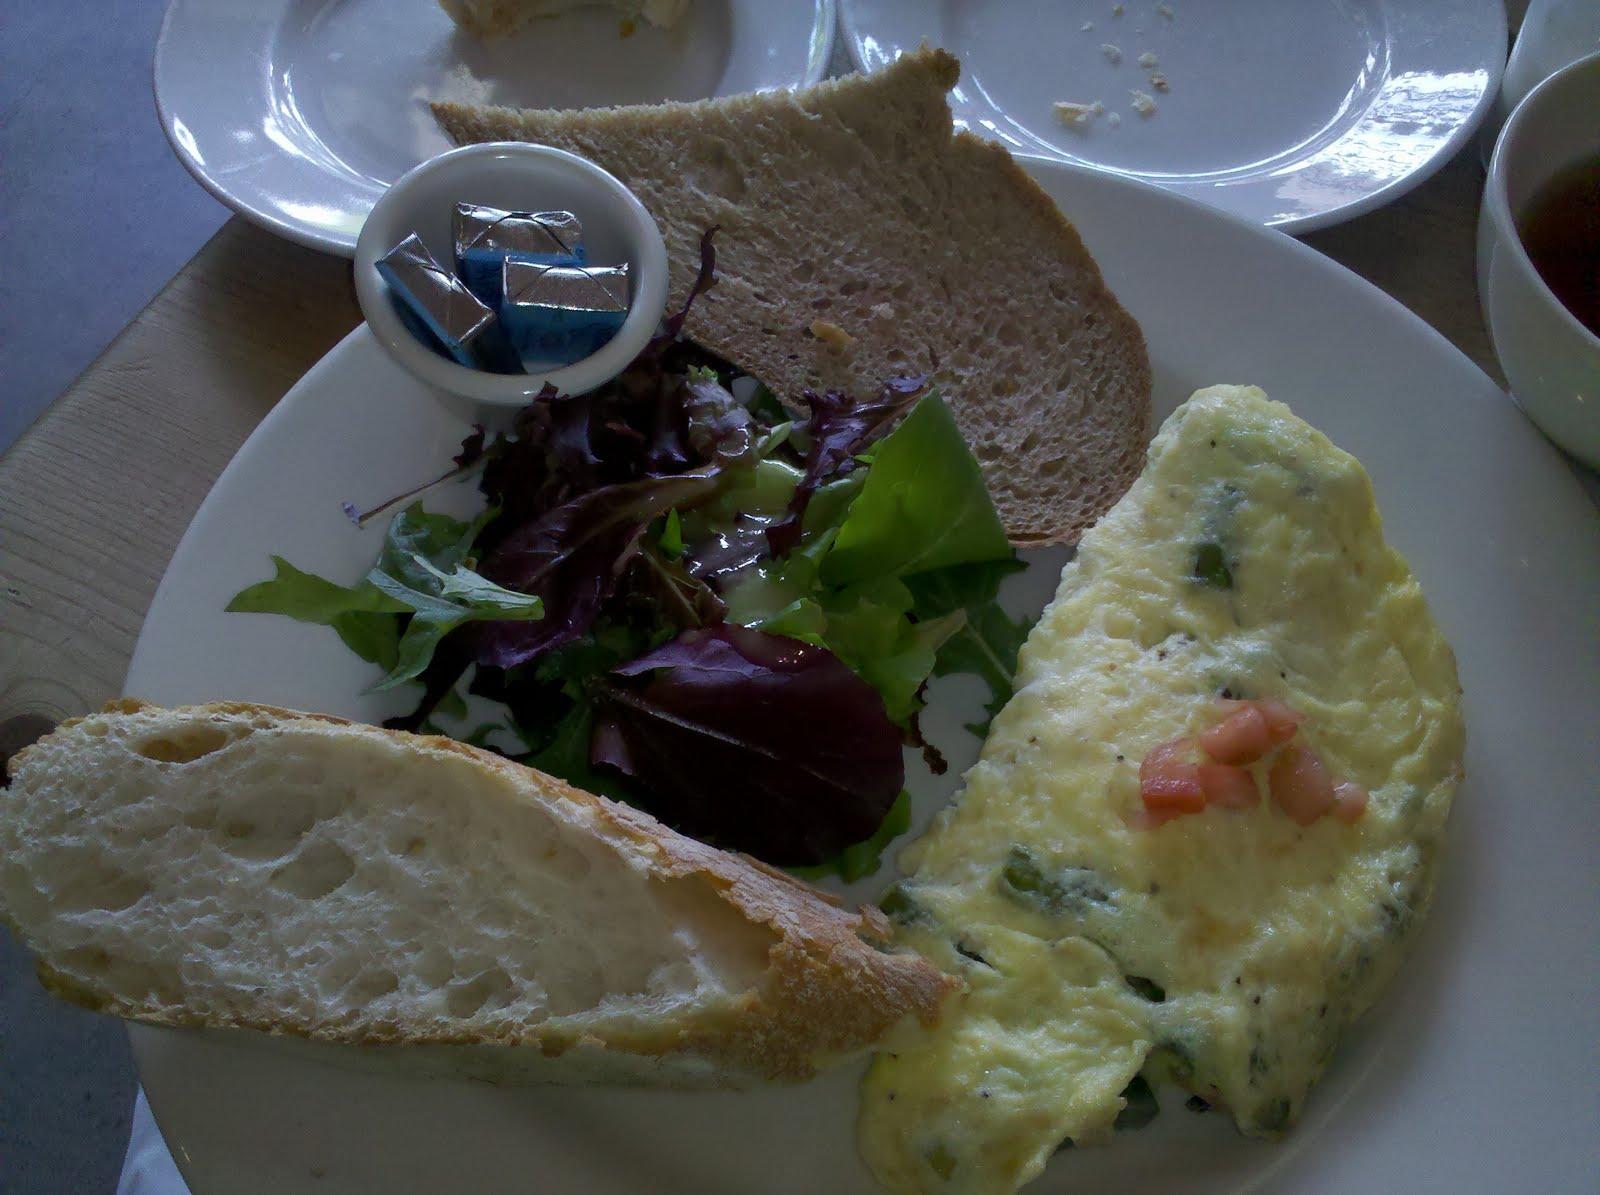 Asparagus+and+Goat+Cheese+Omelette.JPG